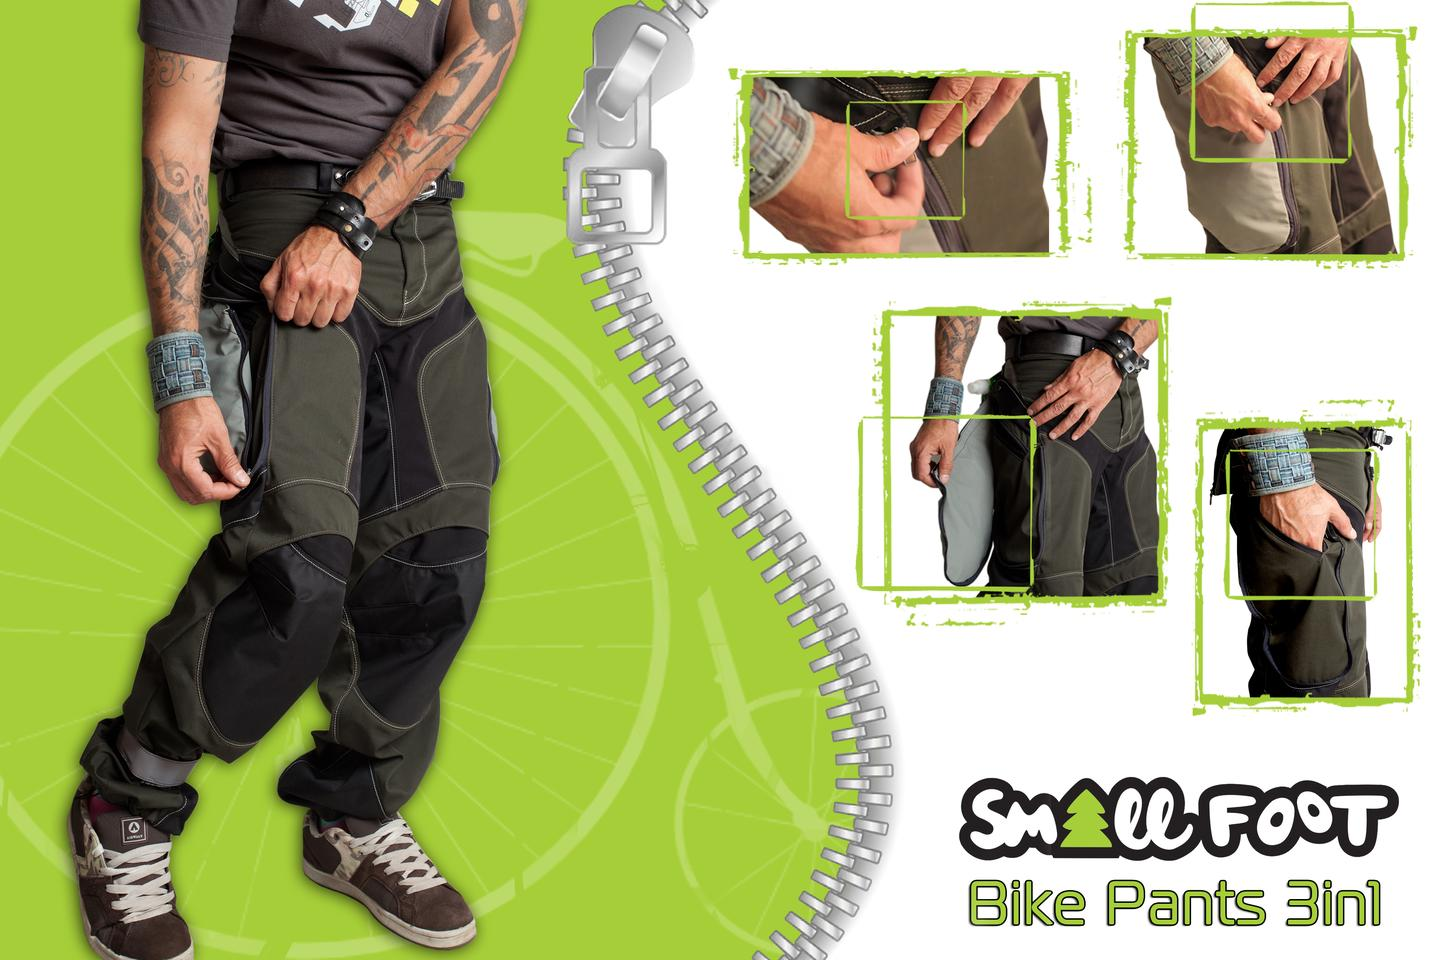 Any Exit Small Foot pants are designed specifically for biking